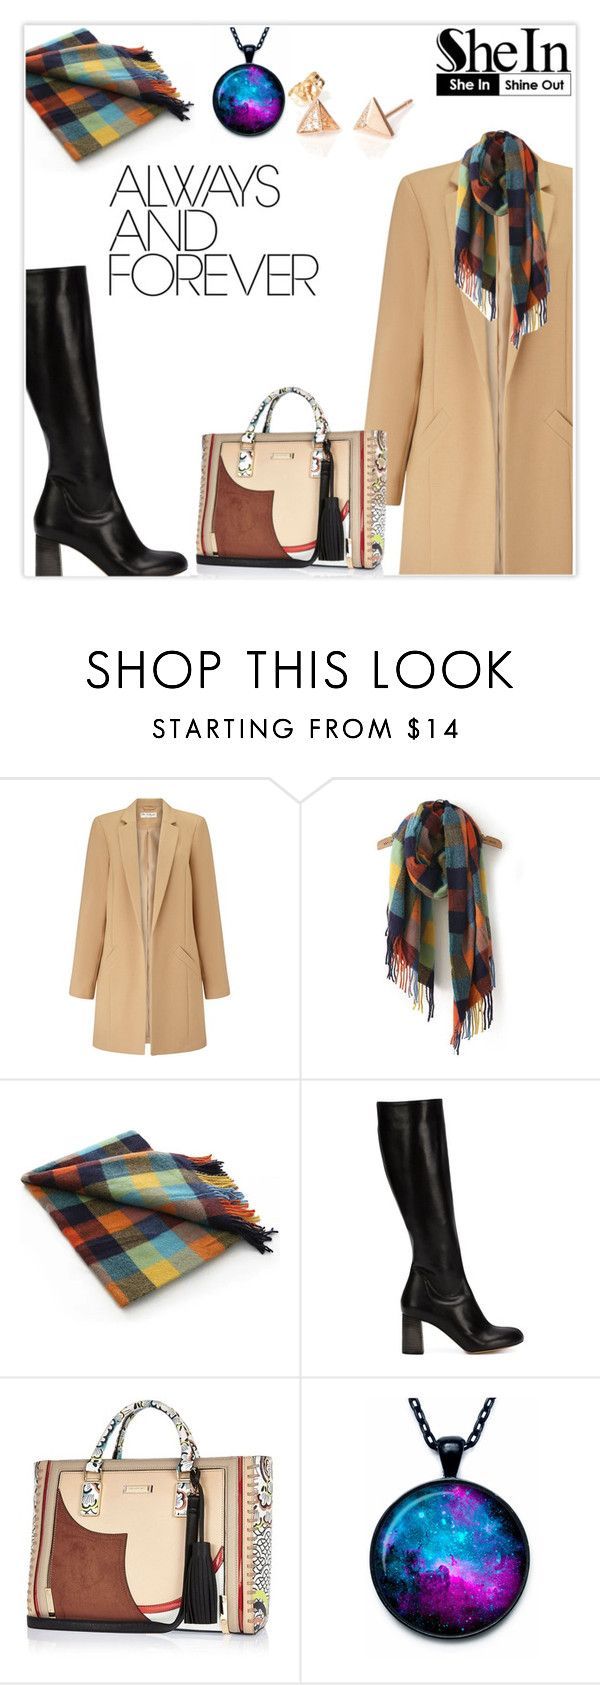 """""""shein"""" by aria-star ❤ liked on Polyvore featuring Miss Selfridge, Chloé, River Island, women's clothing, women's fashion, women, female, woman, misses and juniors"""